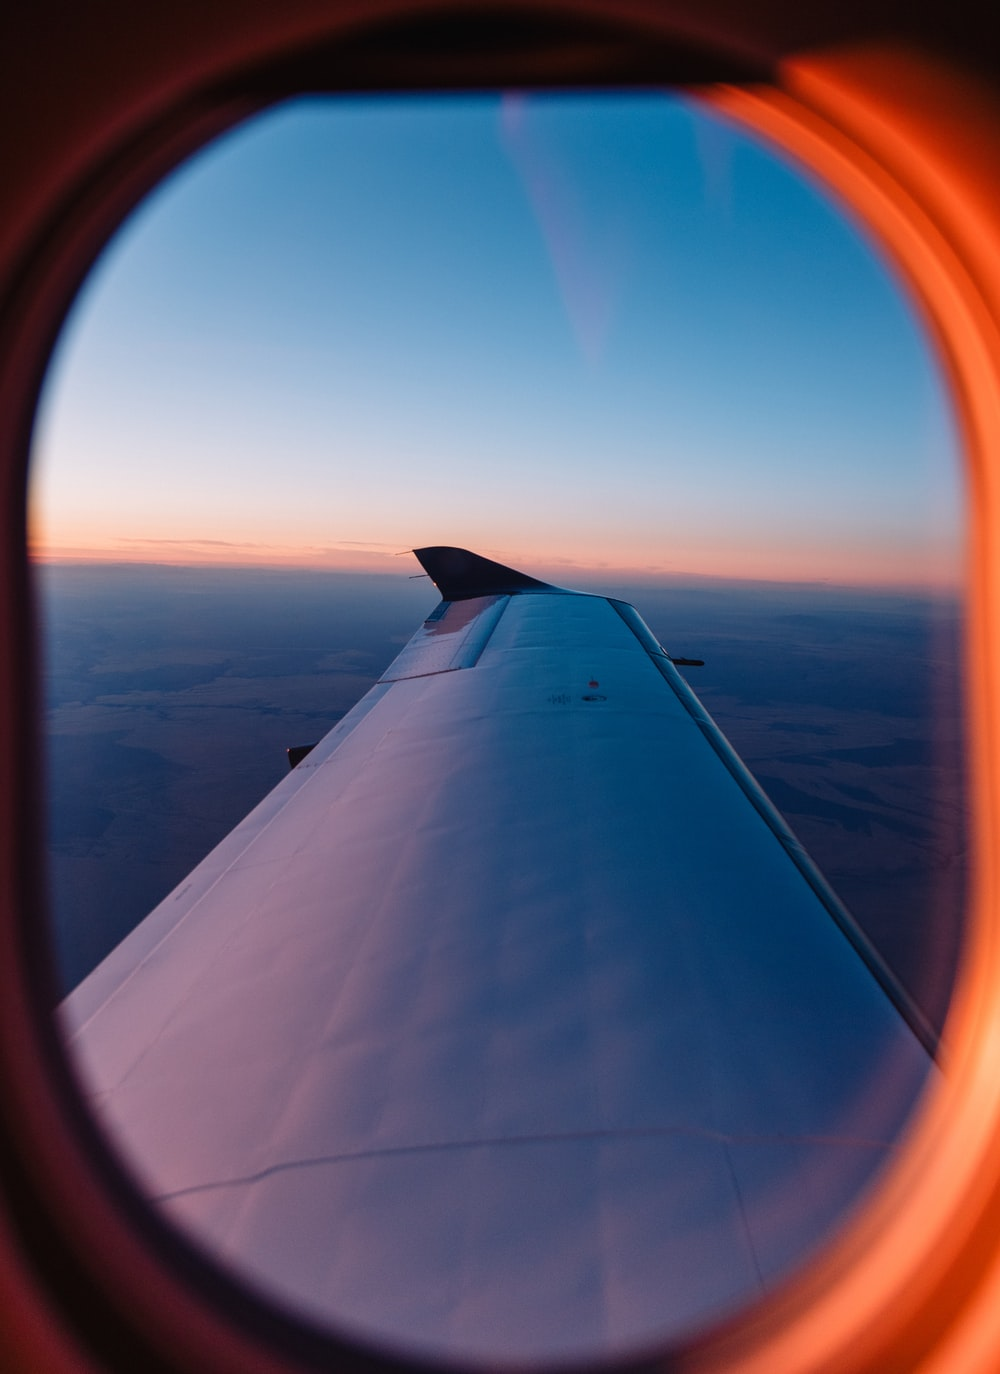 Plane Window Sunset Pictures Download Free Images On Unsplash